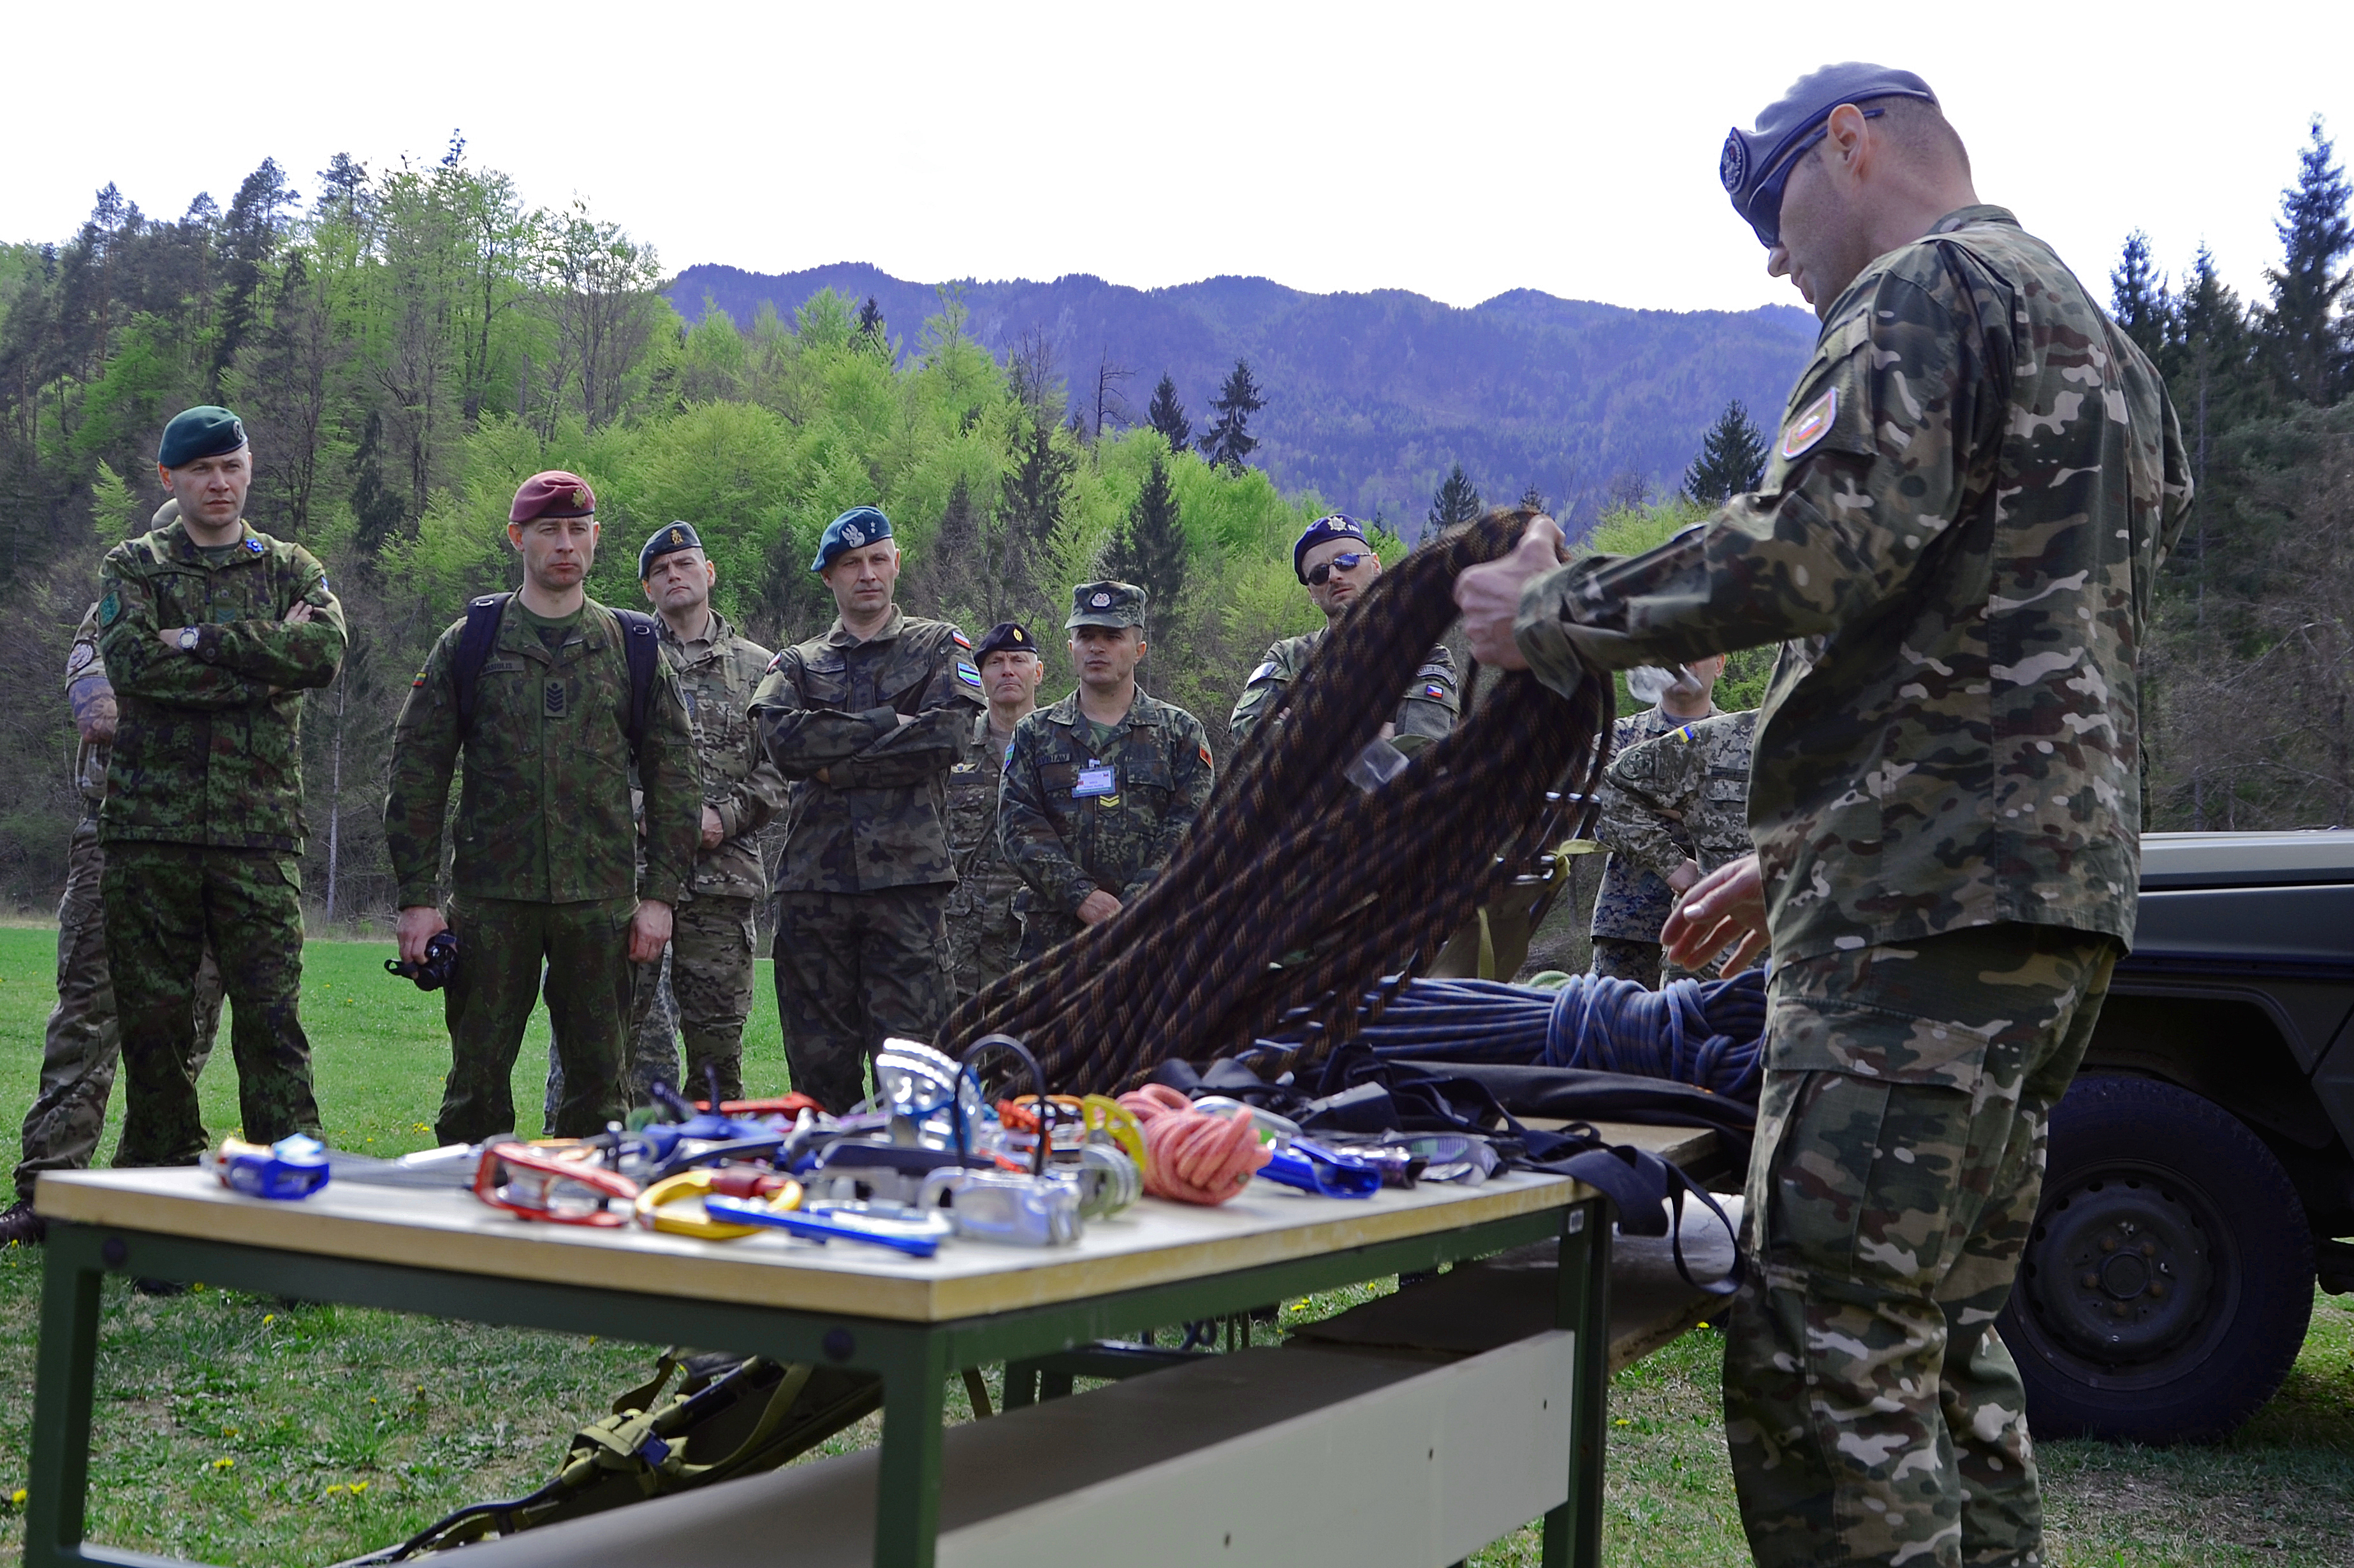 A member of the Slovenian army's 132nd Mountain Infantry Regiment shows participants of the Conference of European Army NCOs some of the equipment Slovenia's soldiers use for mountain warfare. The country has a long history with mountain warfare, including being the setting for World War I's famous Battles of the Isonzo, which partially inspired Ernest Hemingway's